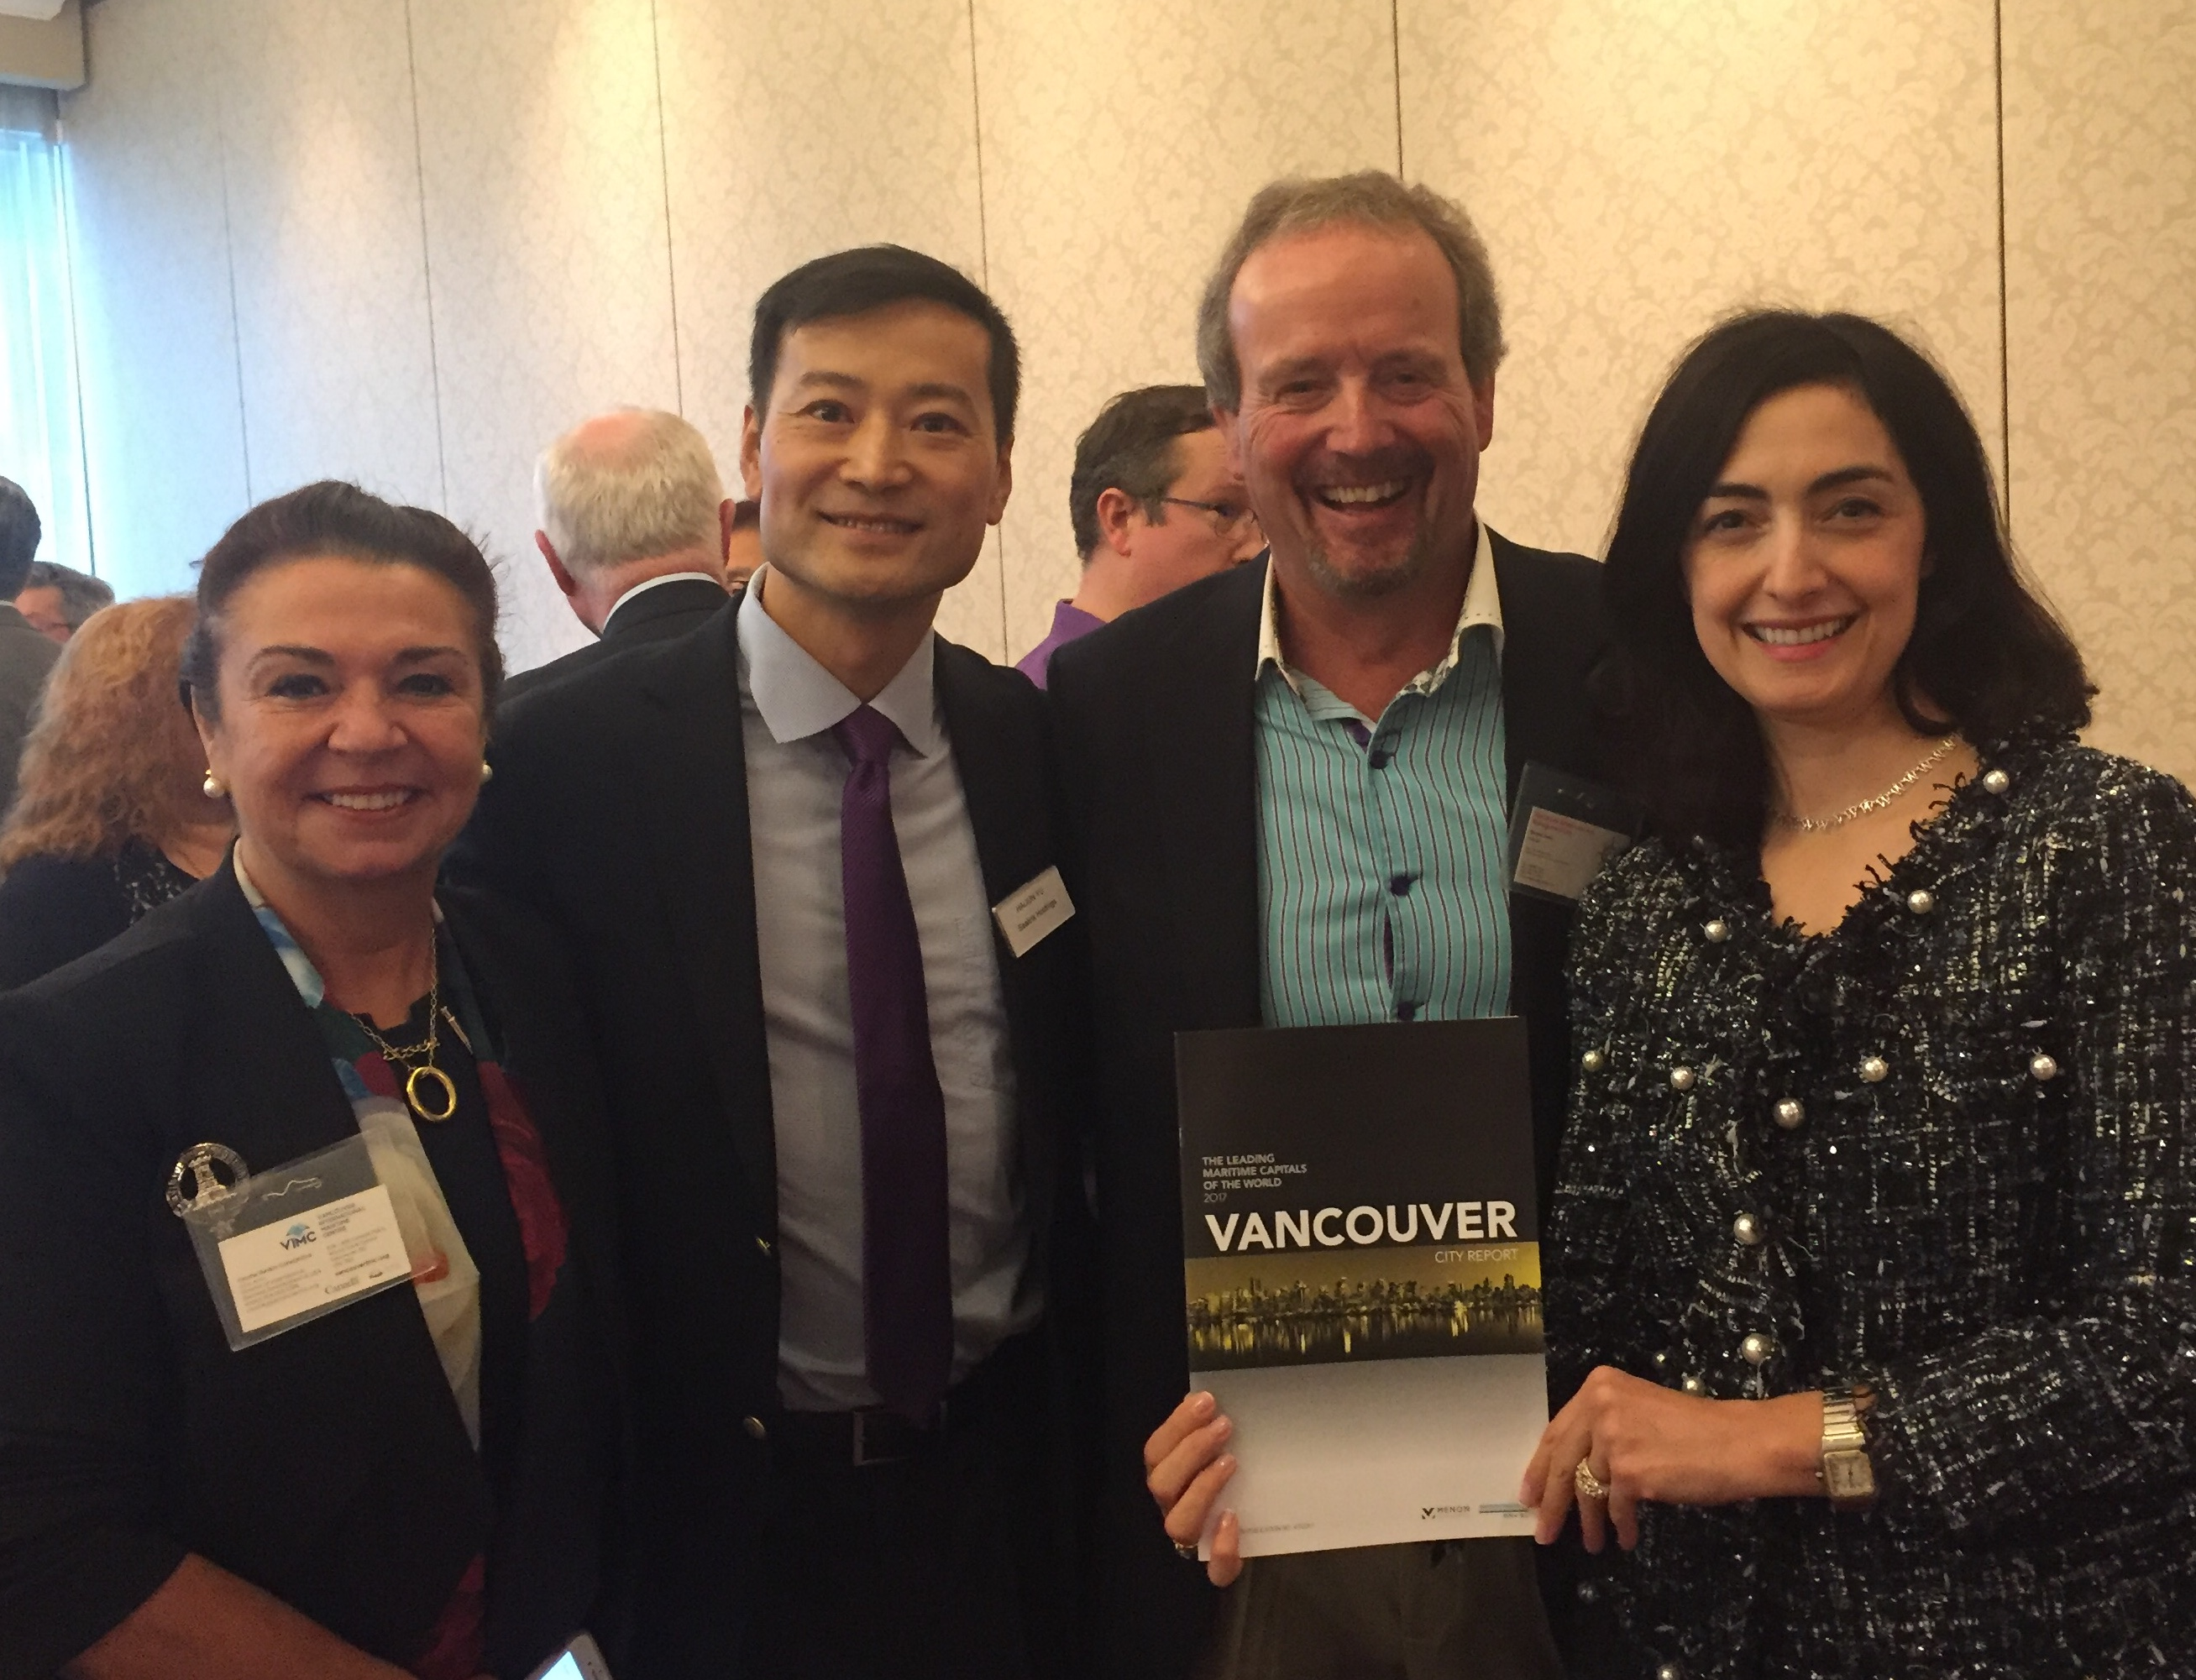 First Vancouver's Shipping Industry Luncheon, Vancouver October 2017